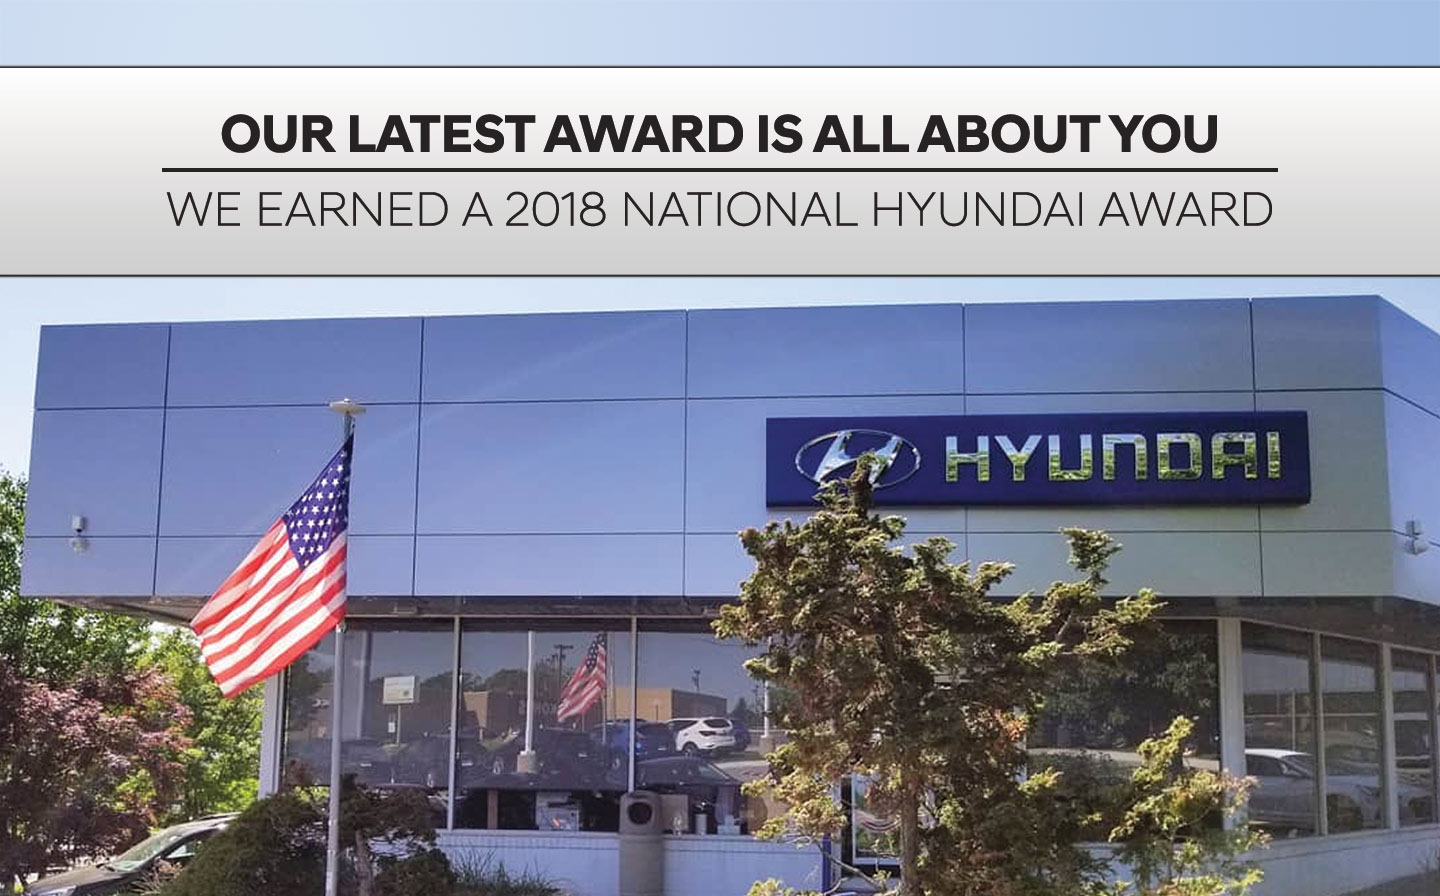 We Earned A 2018 National Hyundai Award